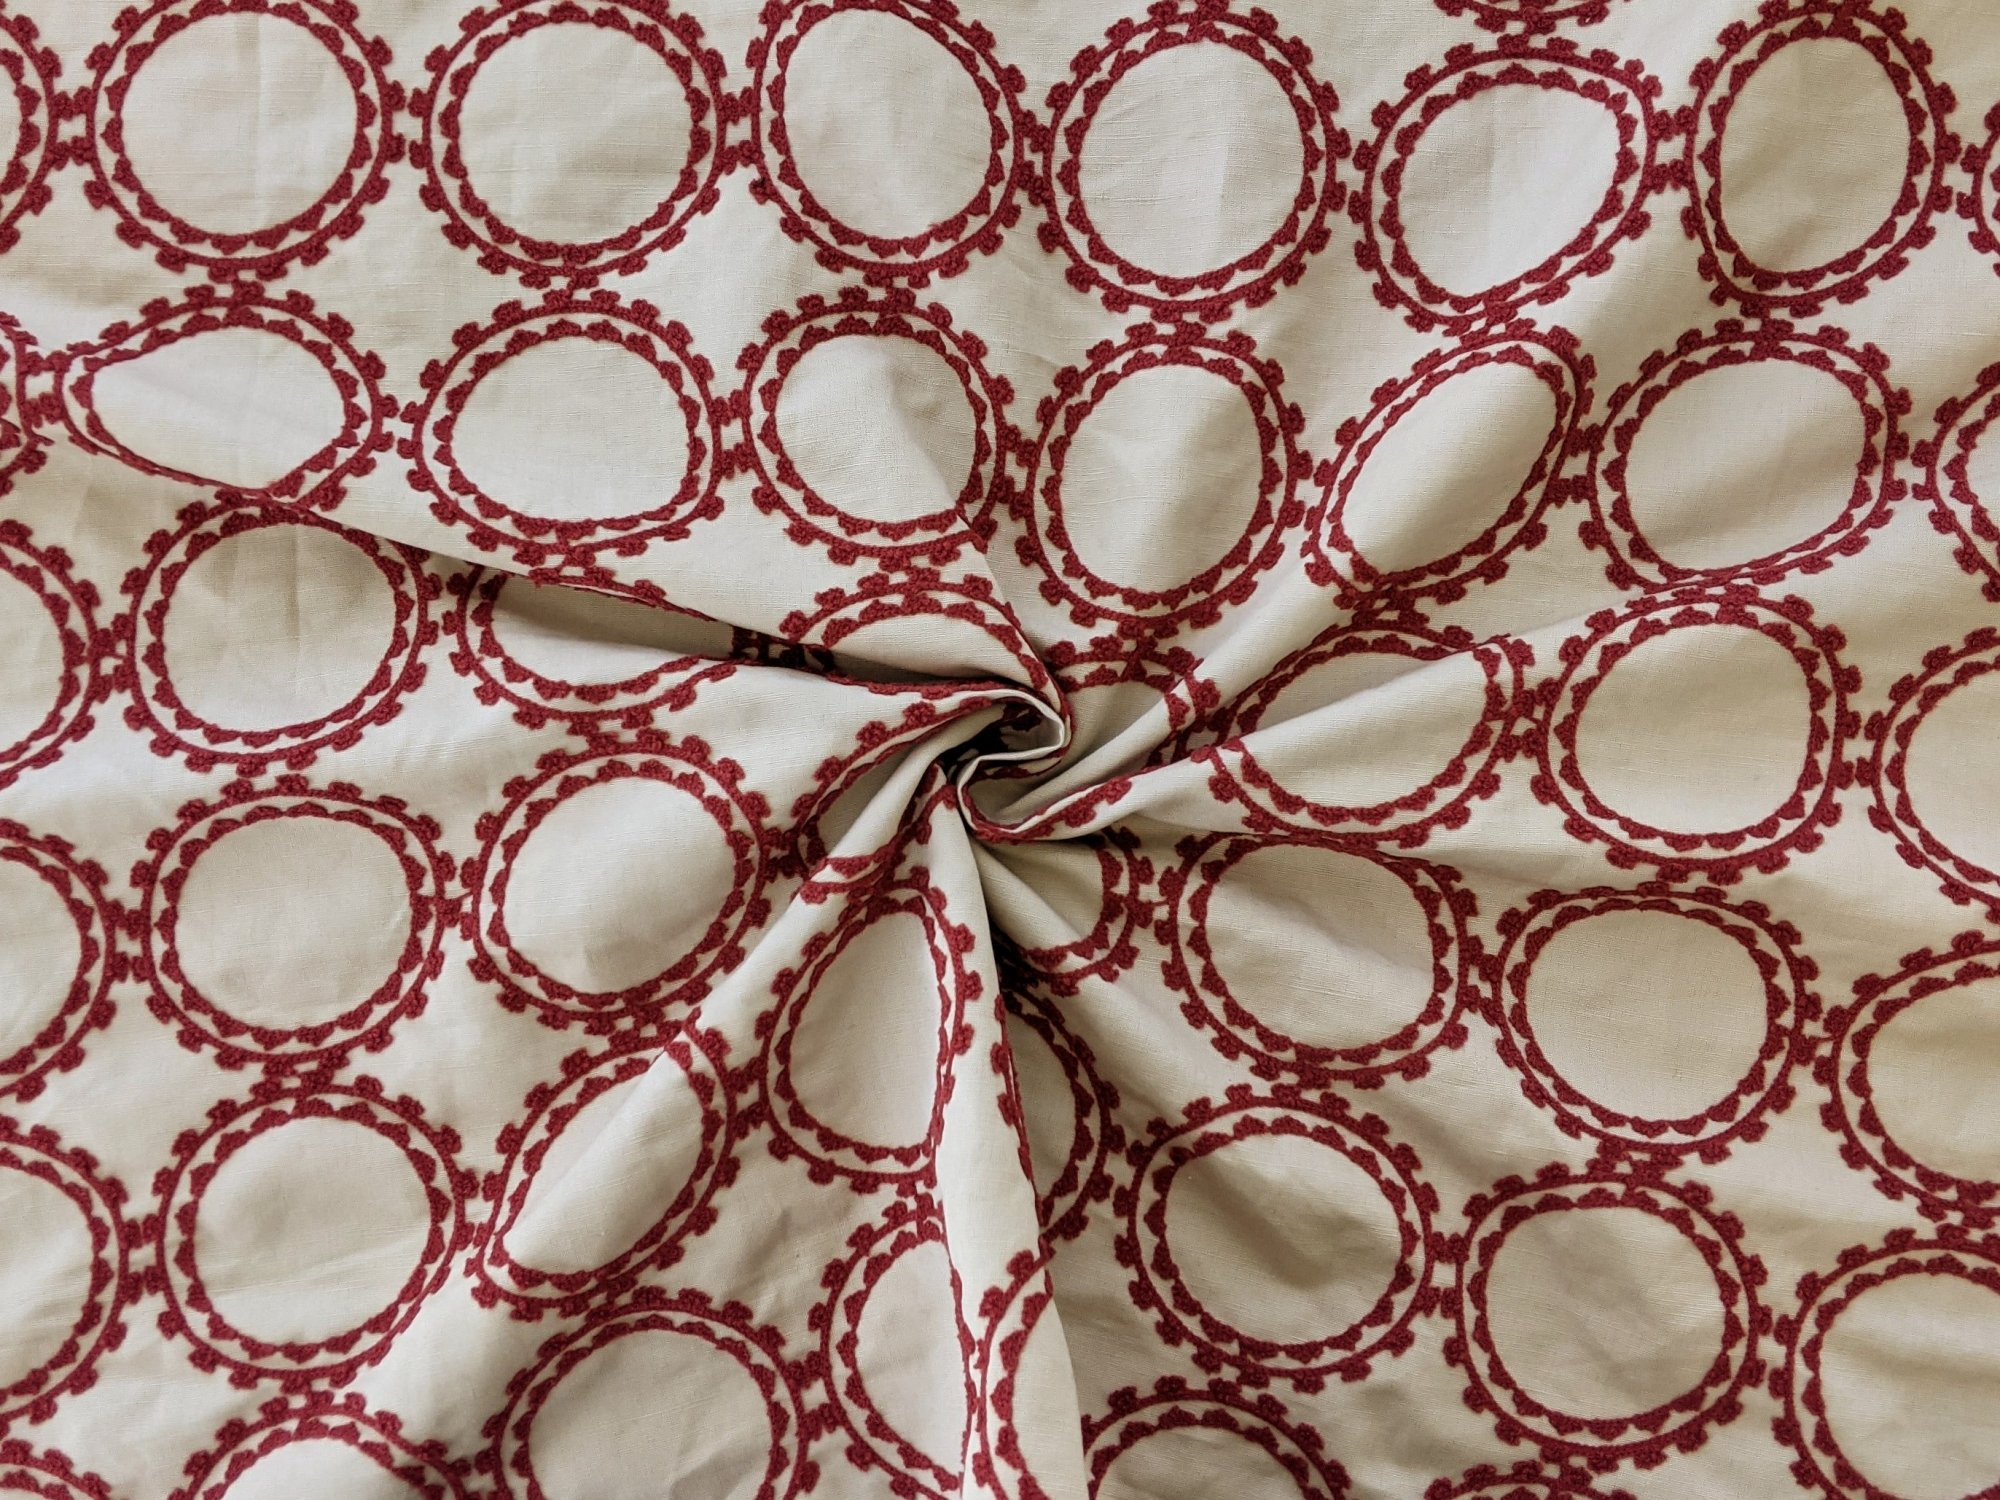 Cotton - Red Circular Embroidery Pattern